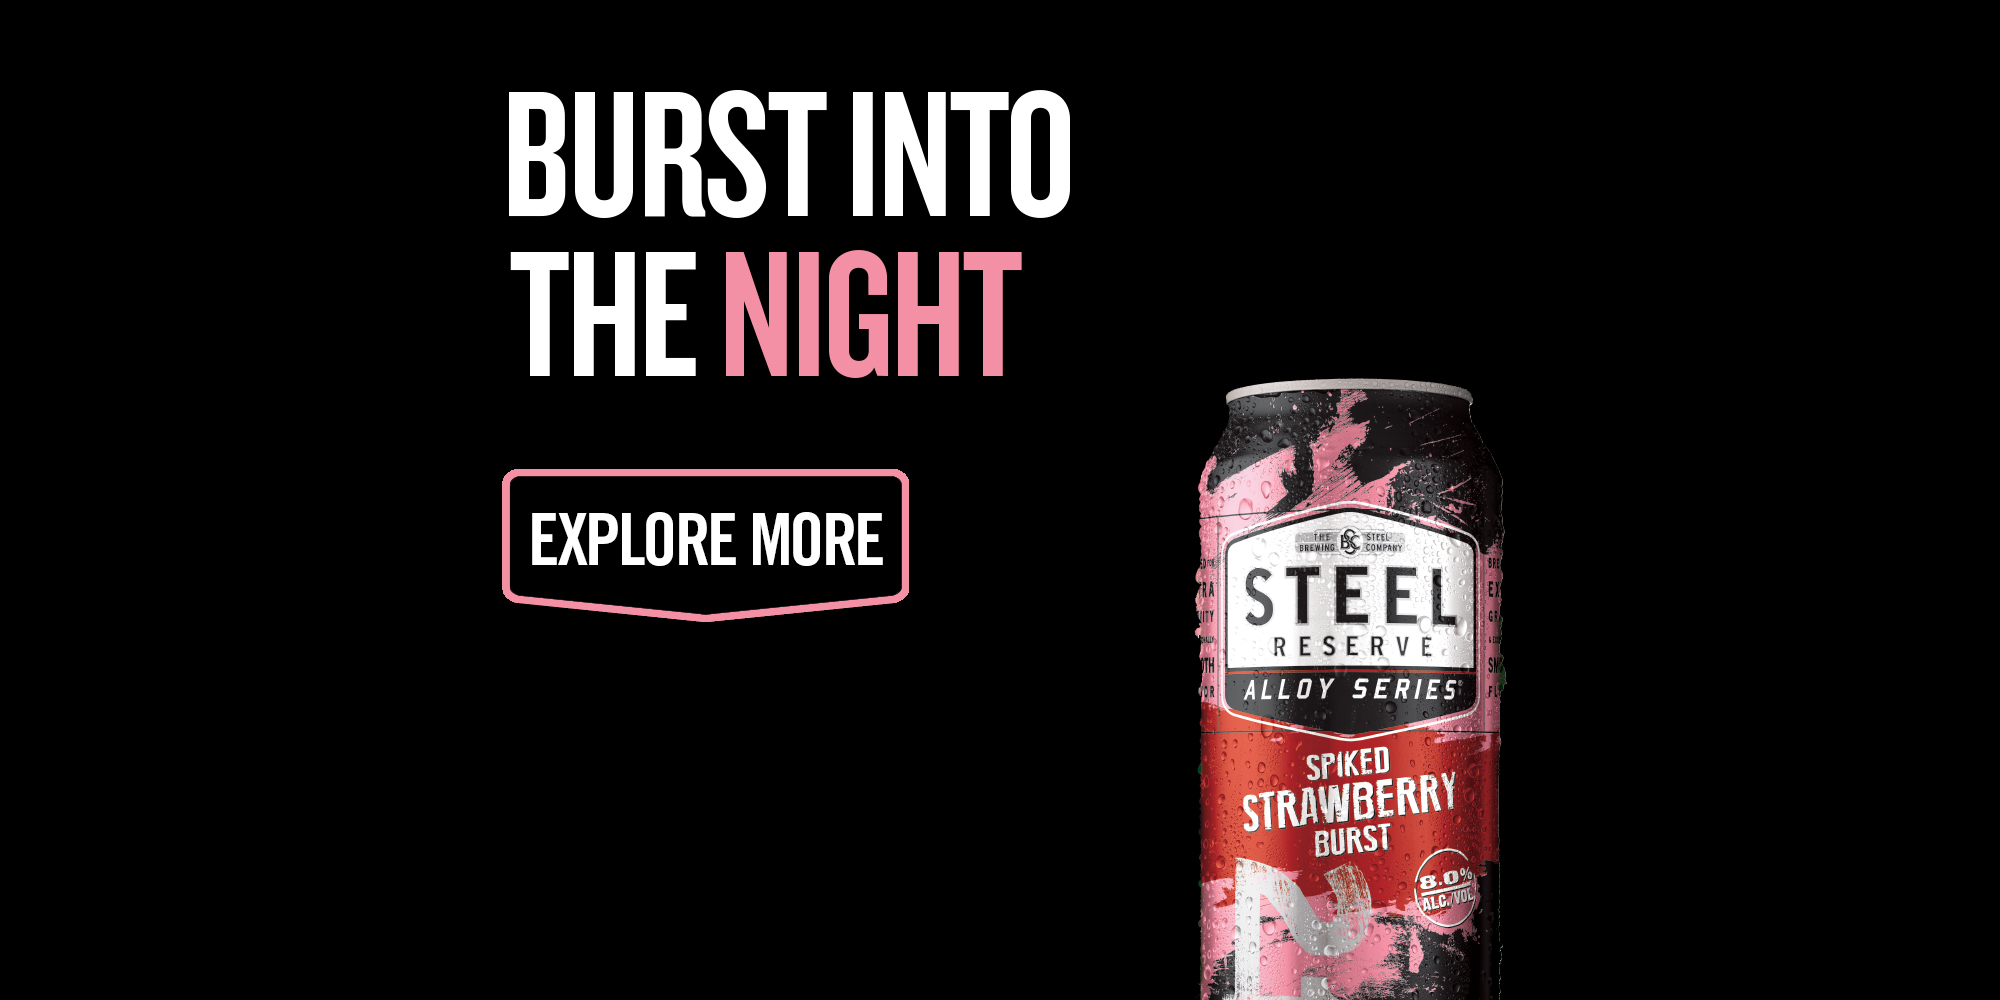 Explore Spiked Strawberry Burst